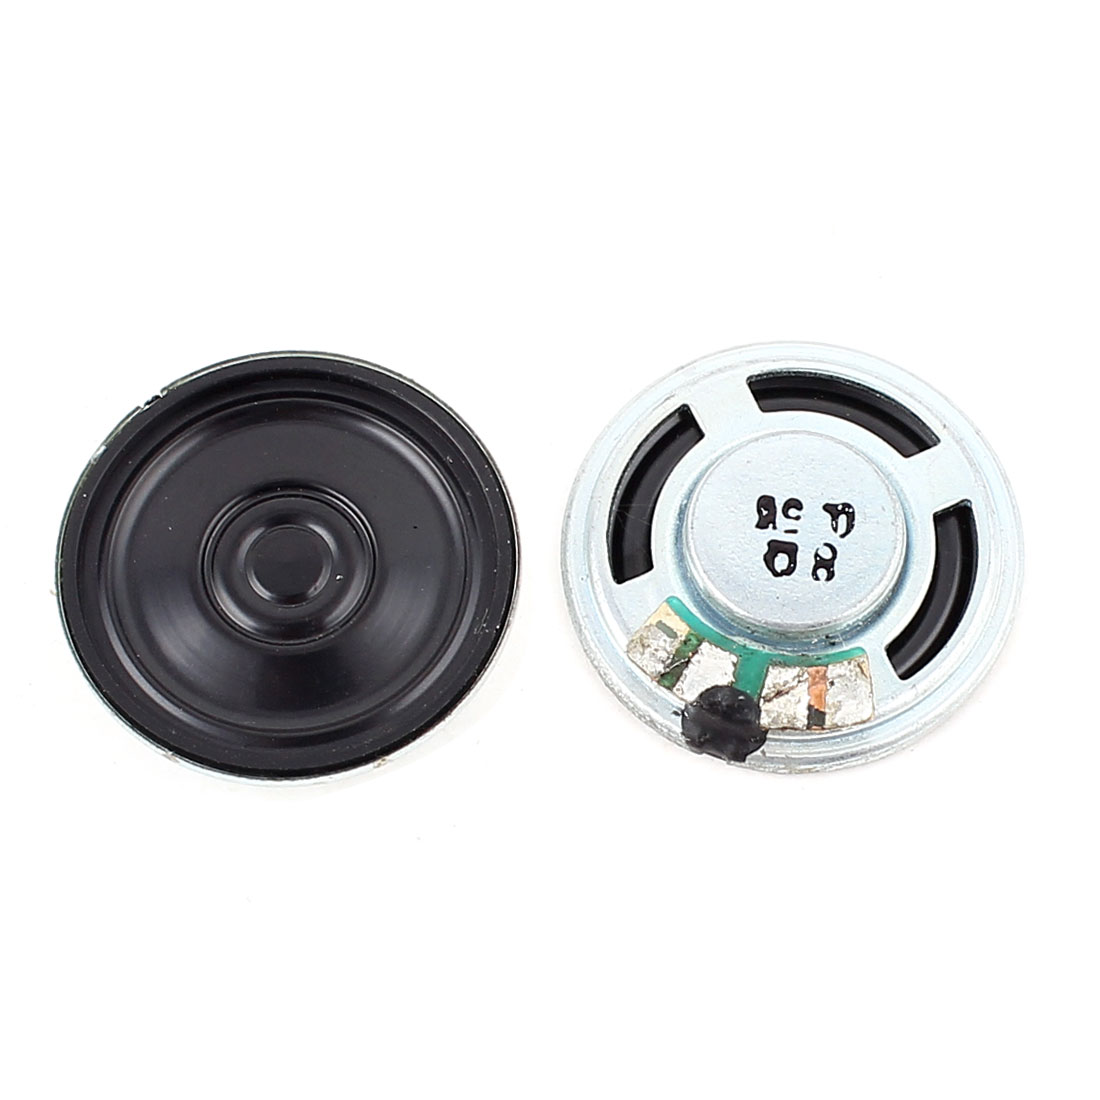 2 Pcs 0.5W 8 Ohm 23mm Round Inside Magnet Electronic Speaker Loudspeaker